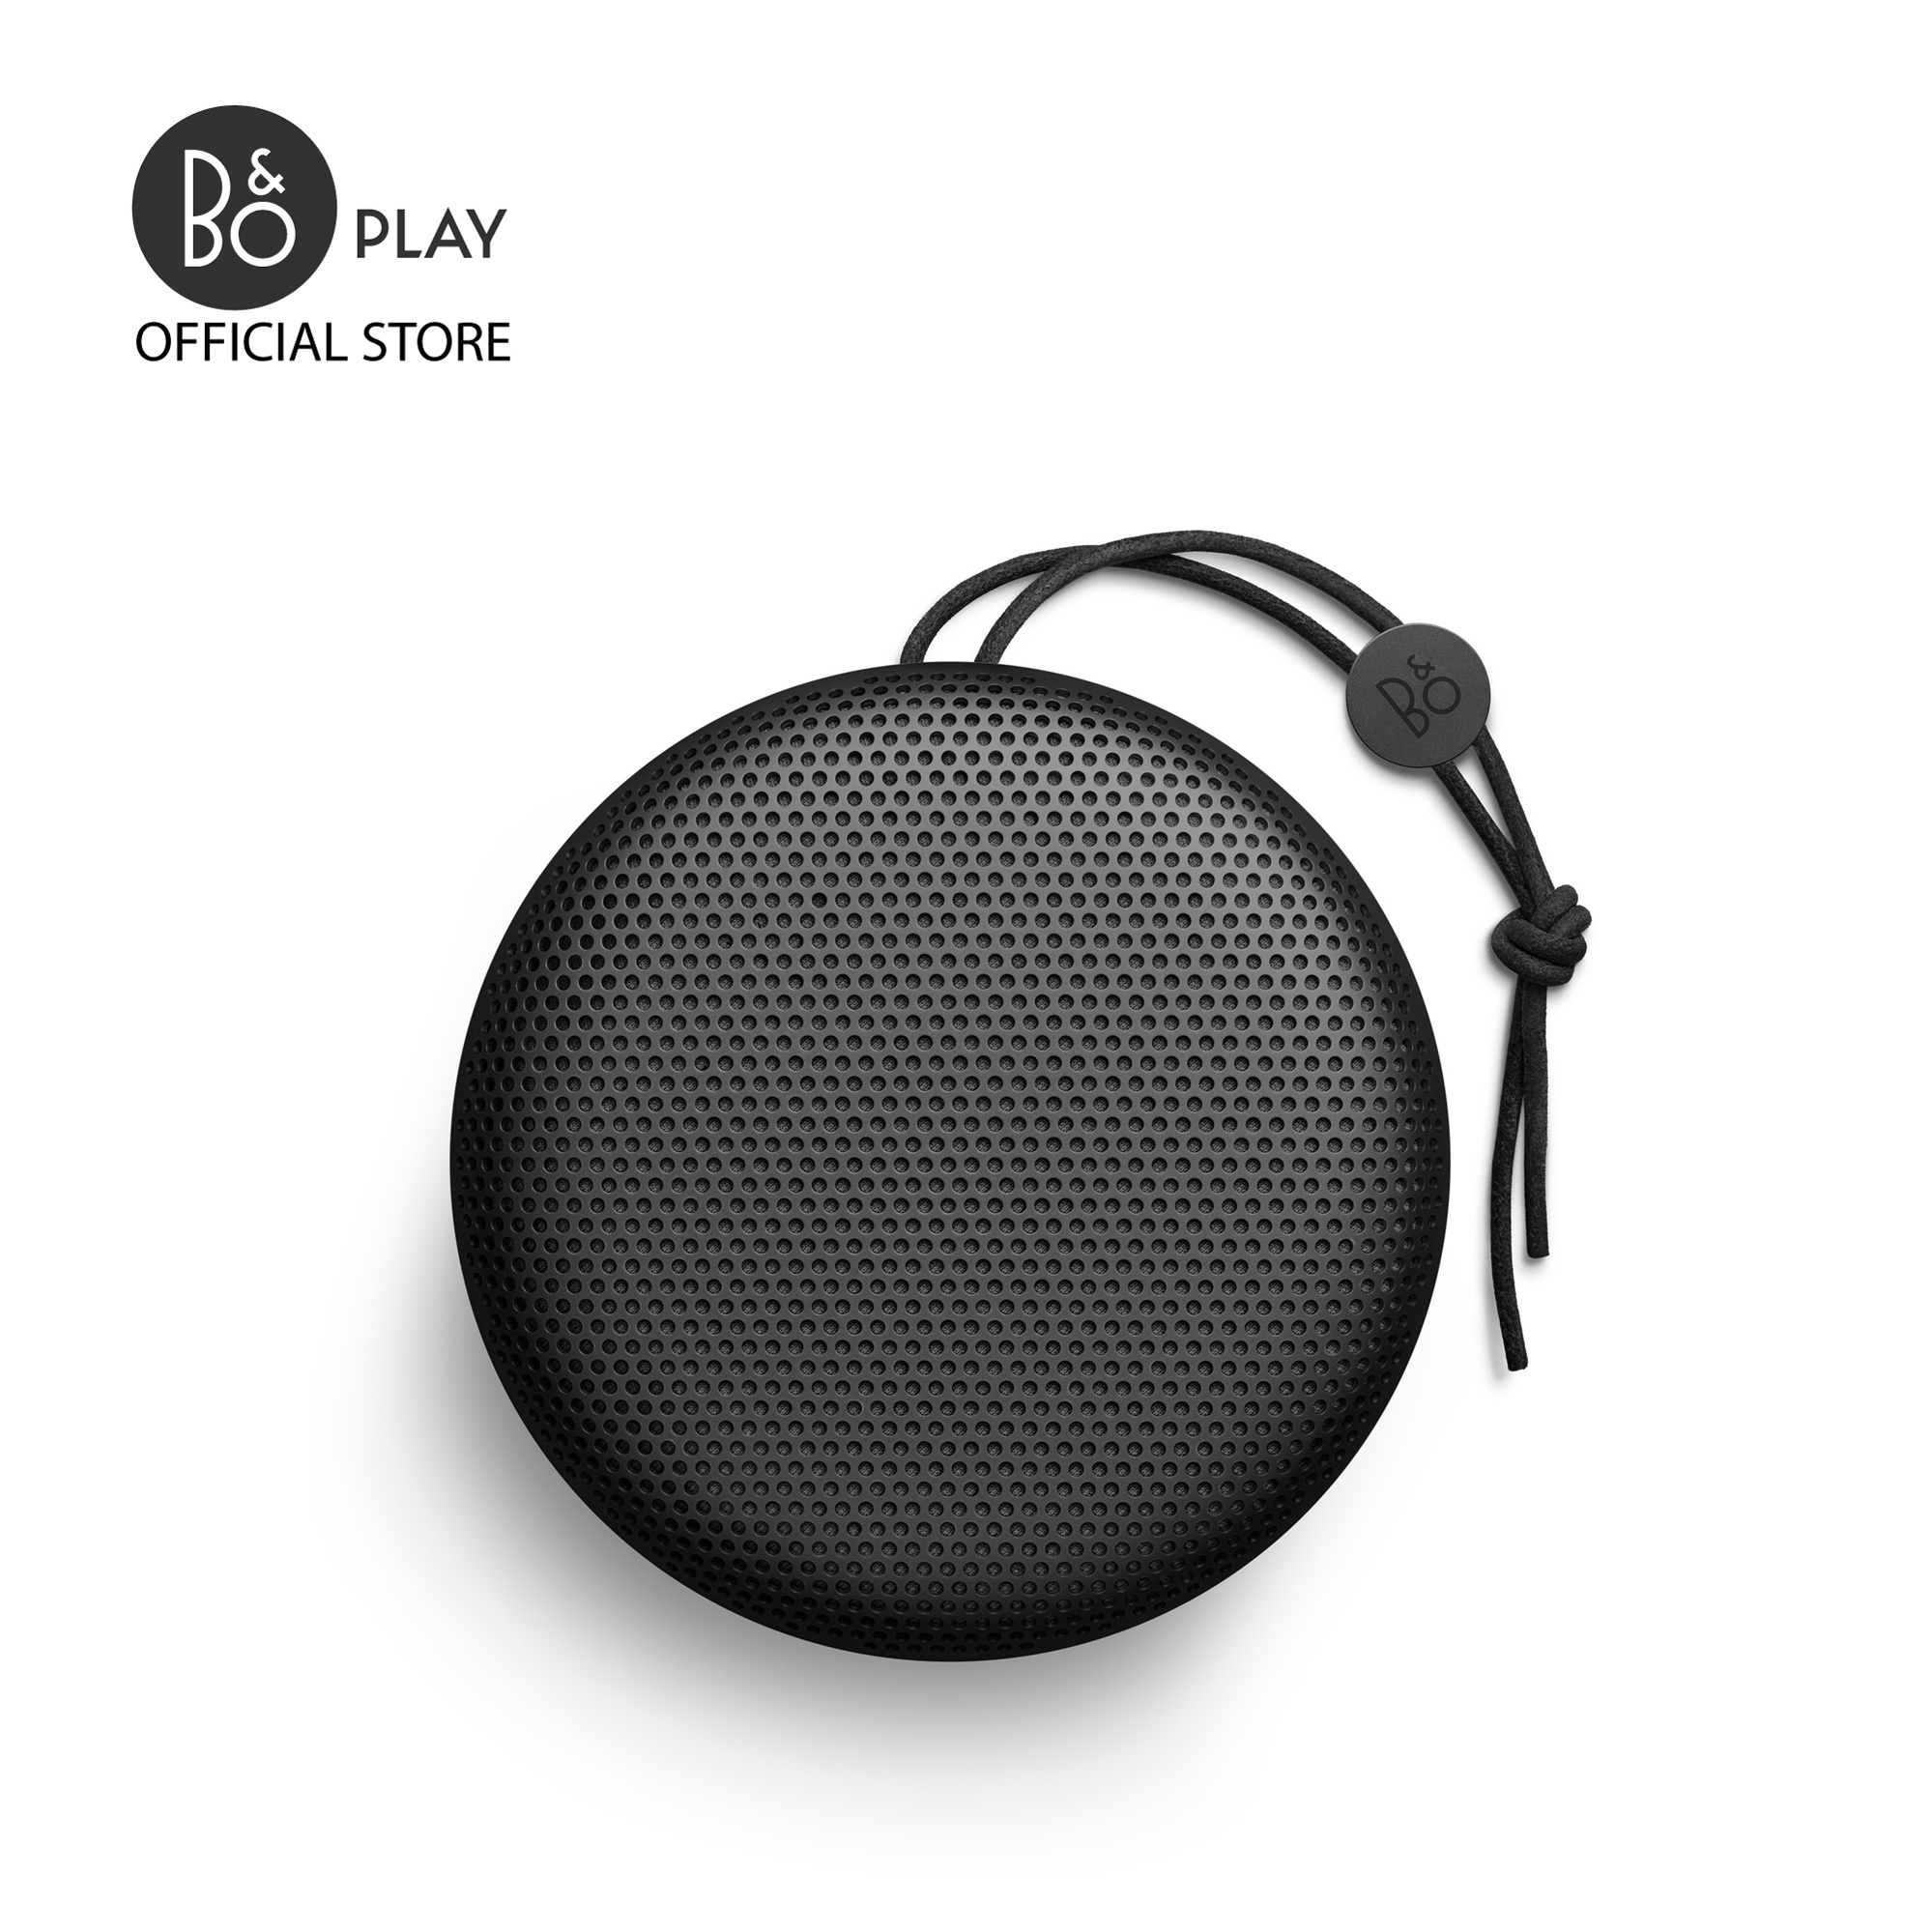 B&O Play รุ่น BeoPlay A1 Black